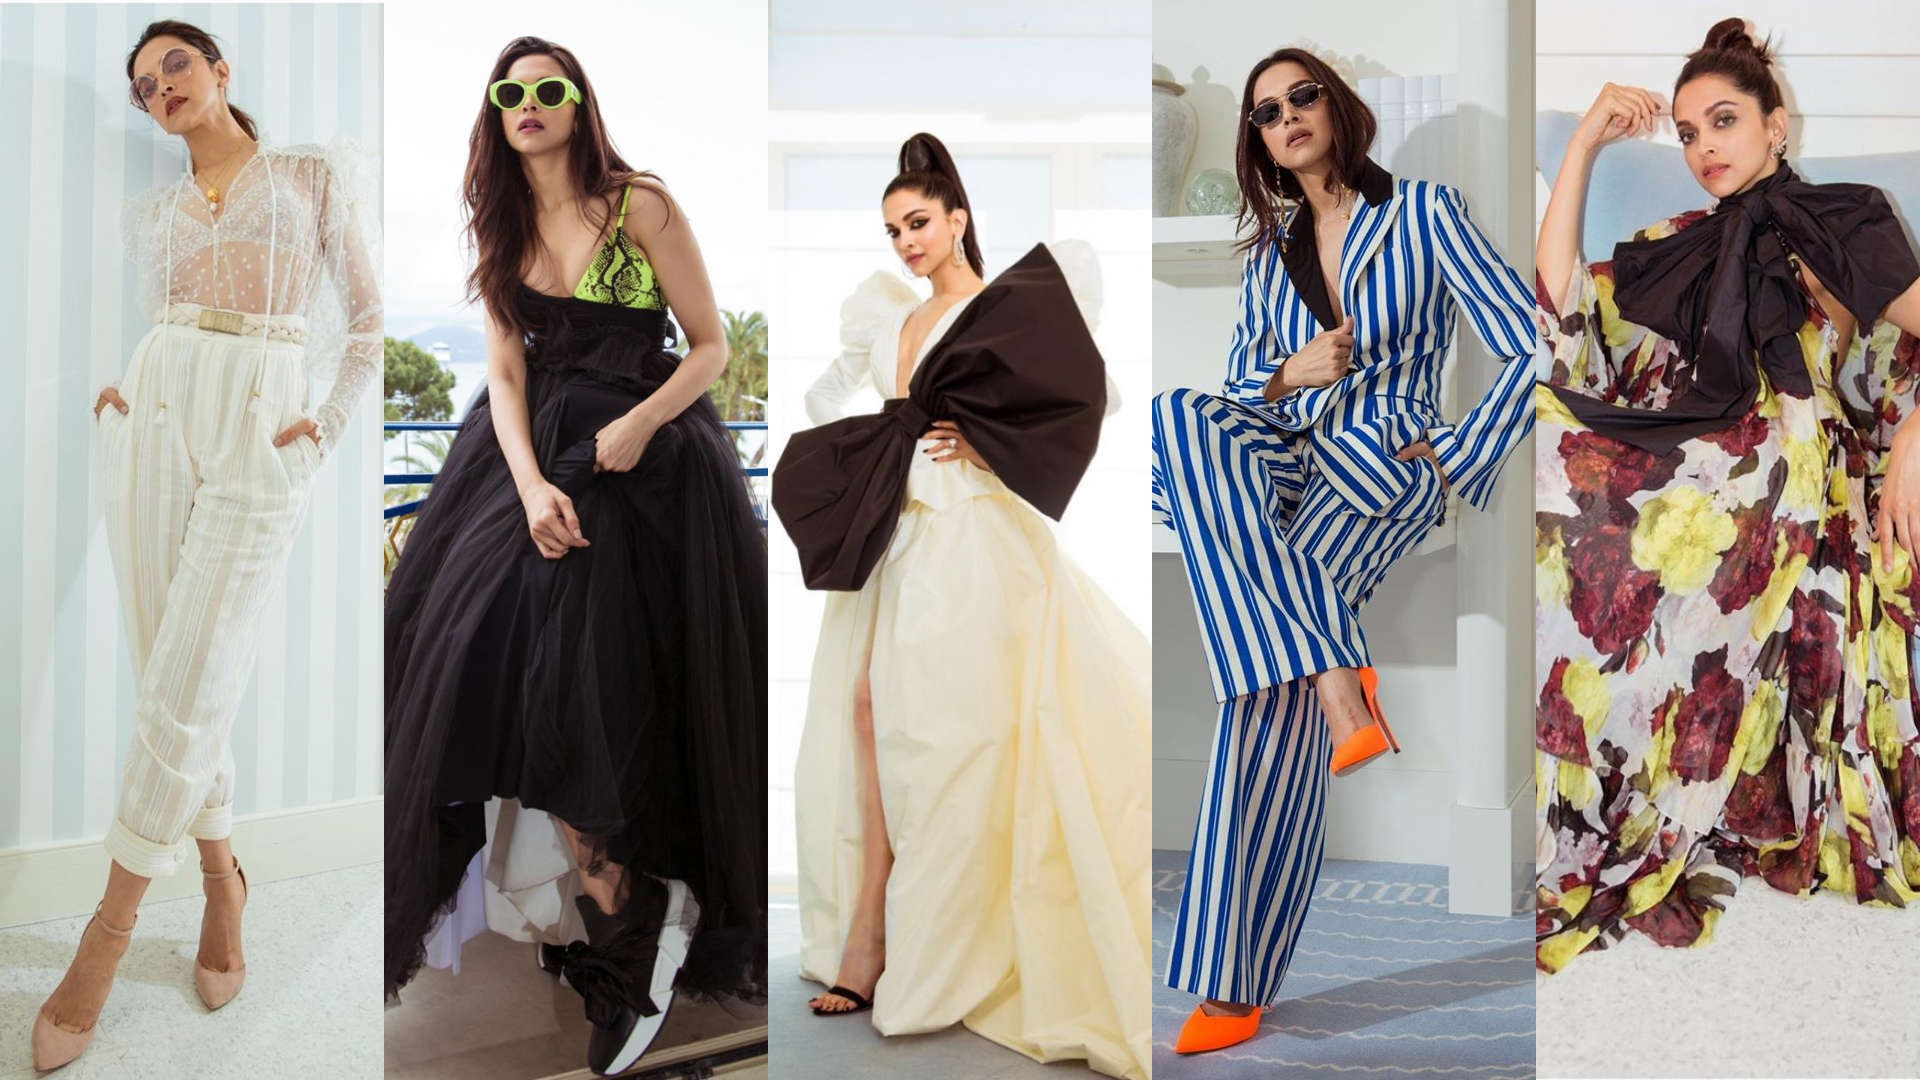 Cannes 2019: Deepika Padukone gives us 5 stunning looks in 2 days and we are impressed!